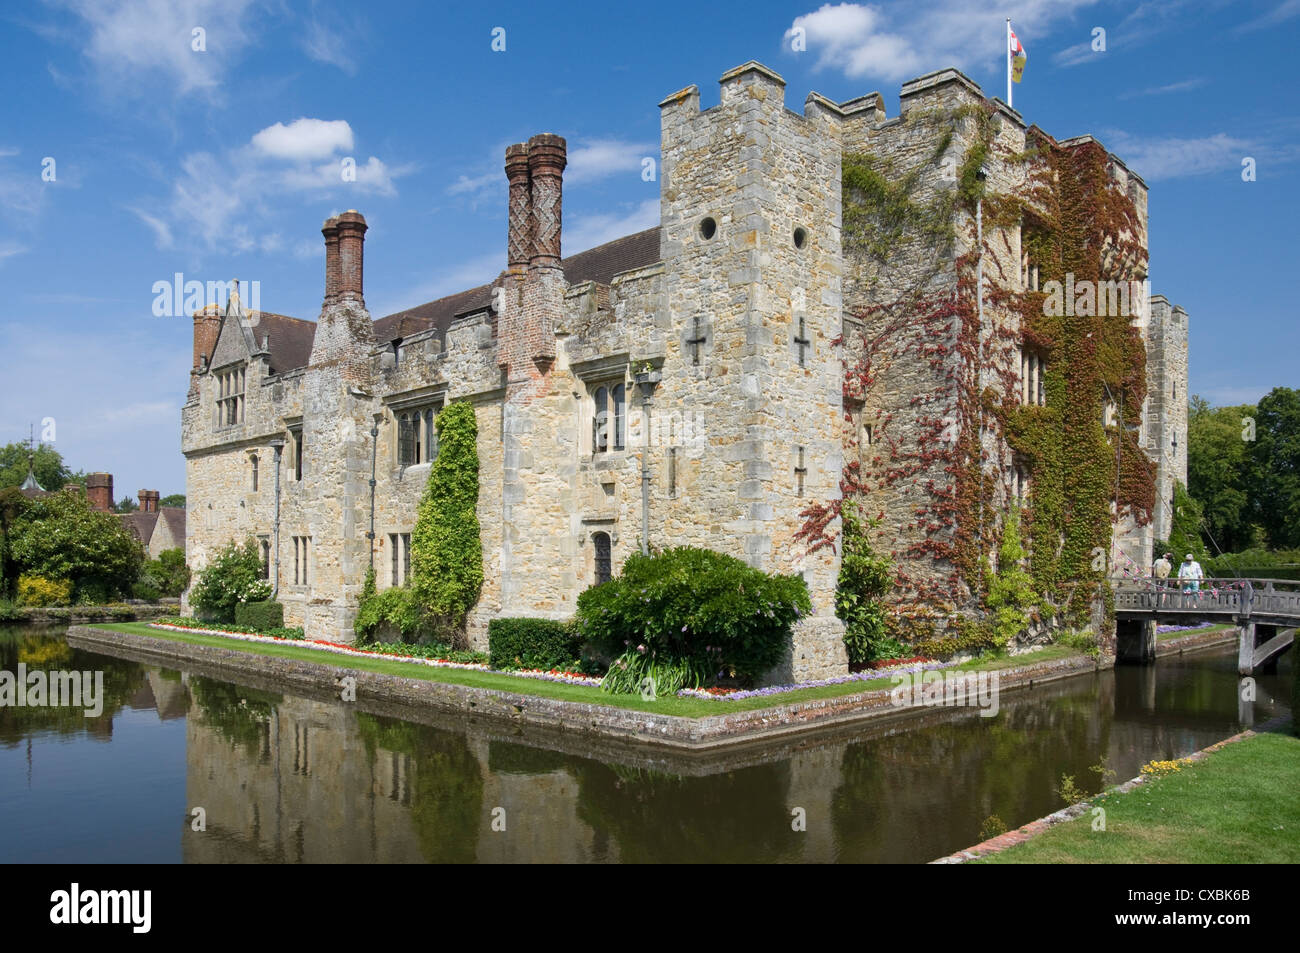 Hever Castle, dating from the 13th century, childhood home of Anne Boleyn, Kent, England, United Kingdom, Europe - Stock Image